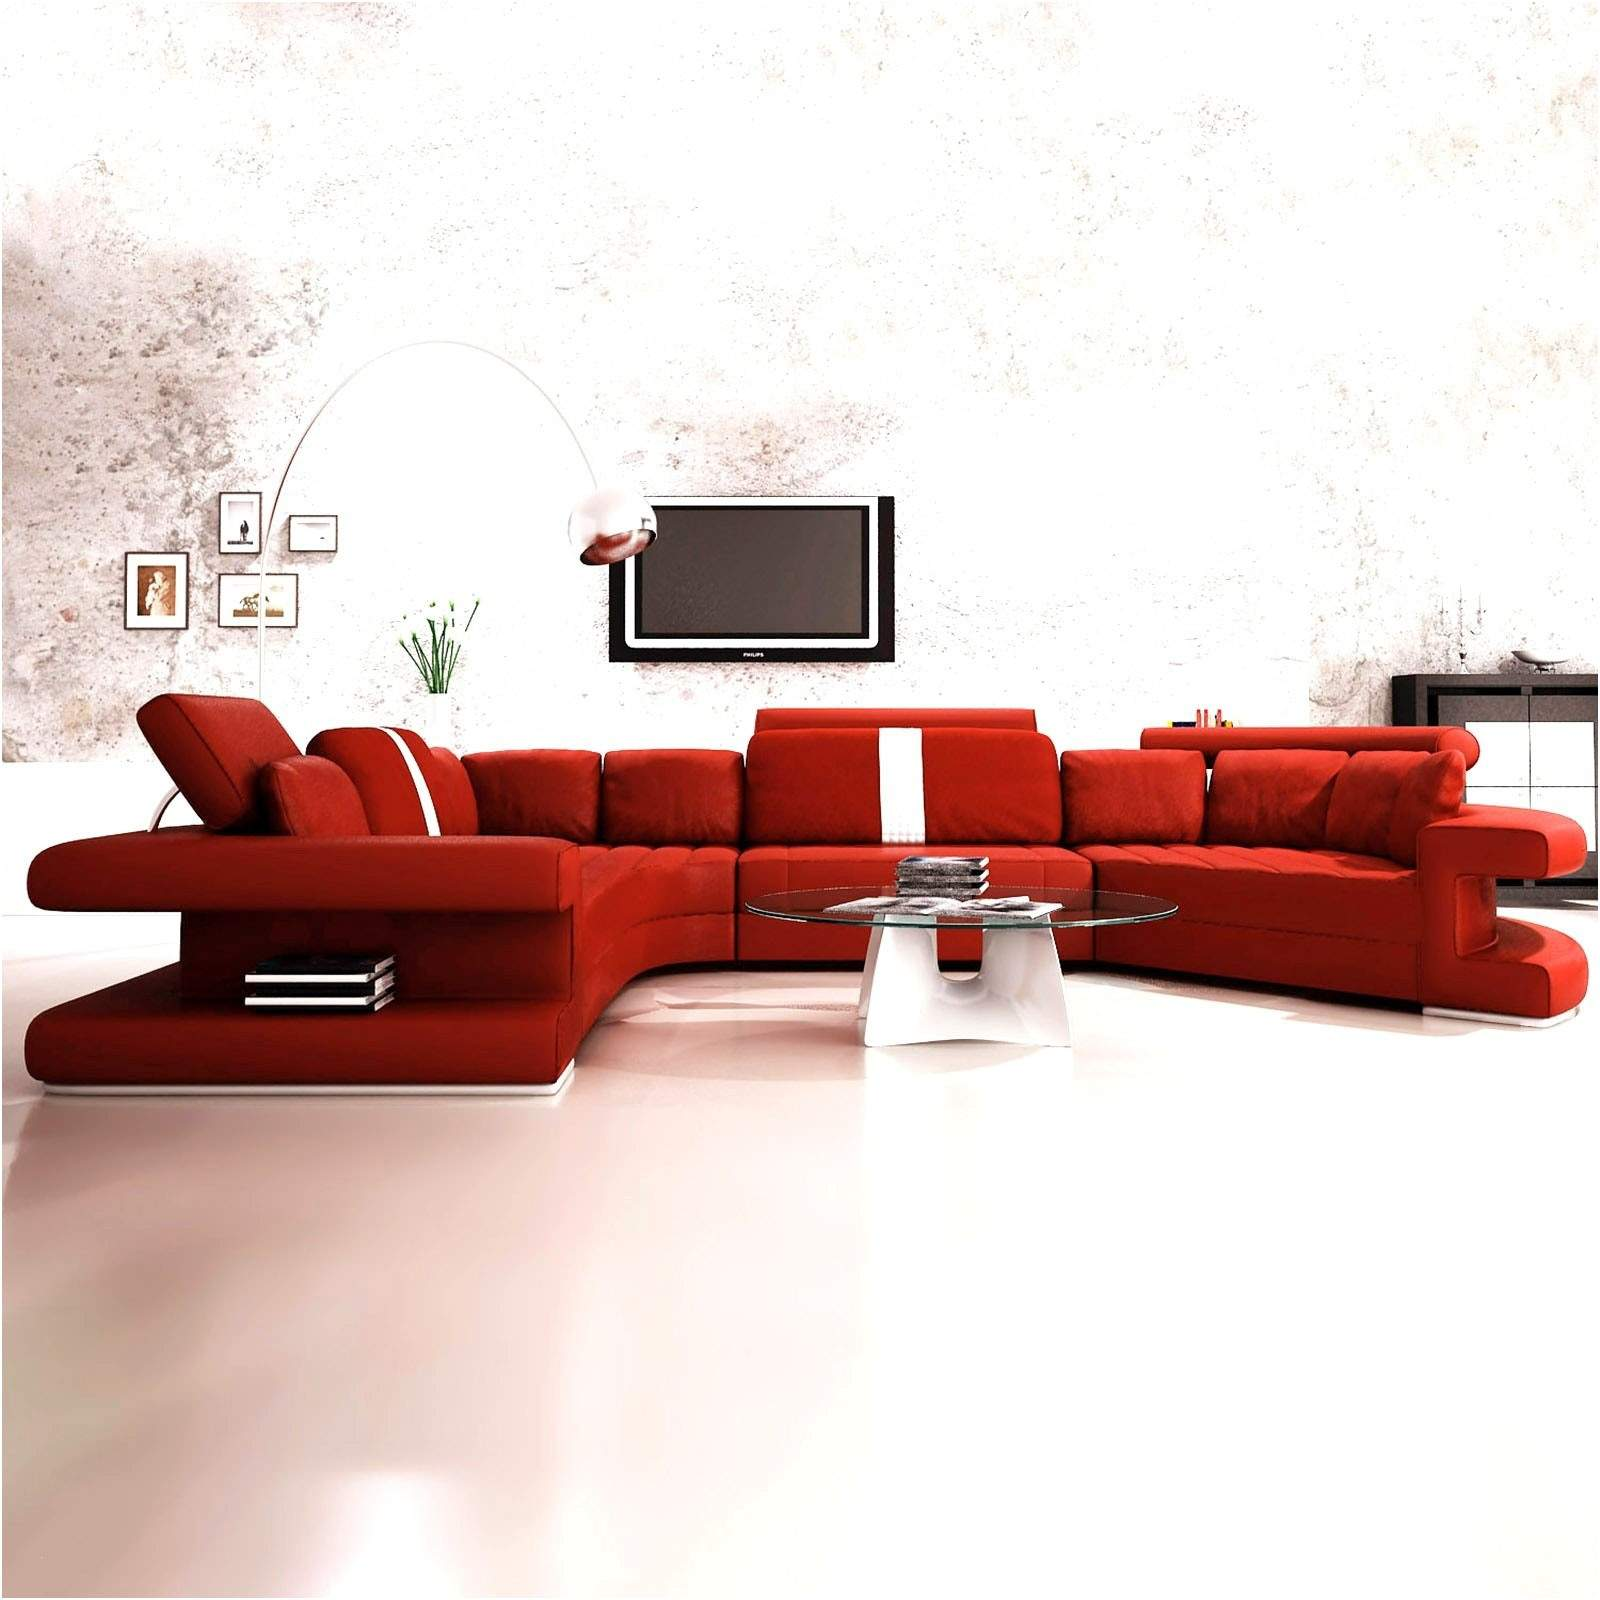 flexform sofa neu l sofa klein black leather couch decor l shaped white leather couch stock of flexform sofa